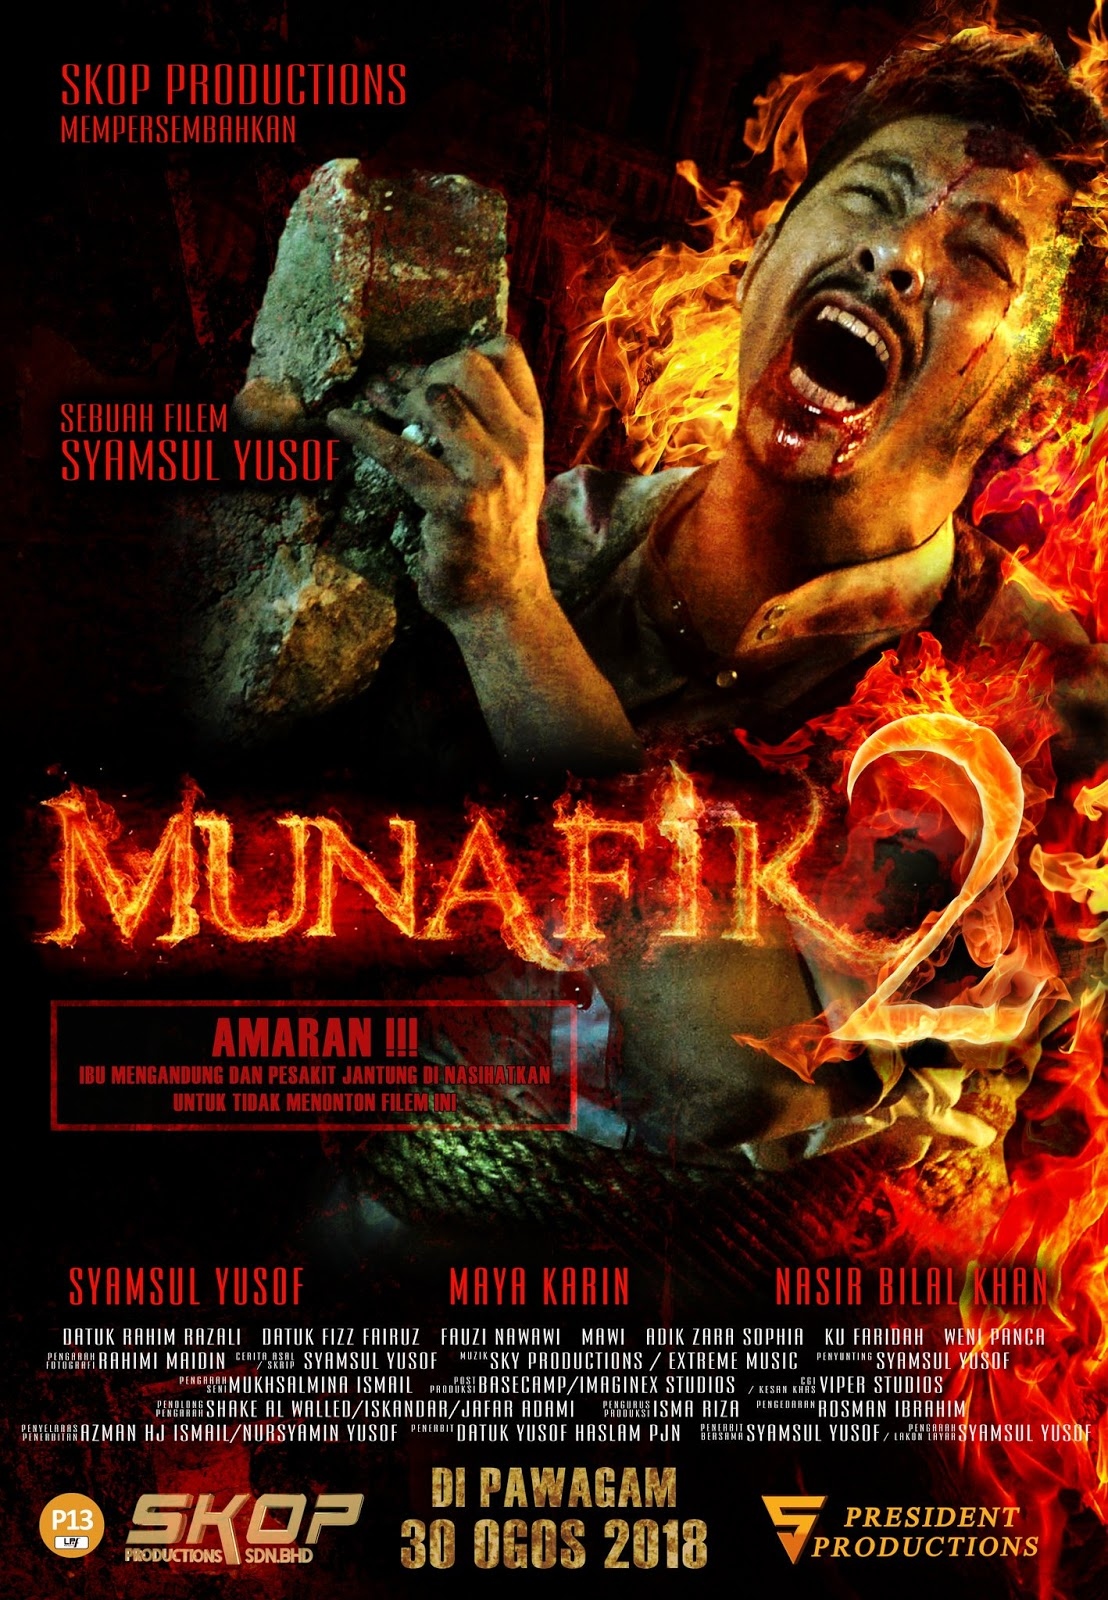 Munafik 2 - Movie Review